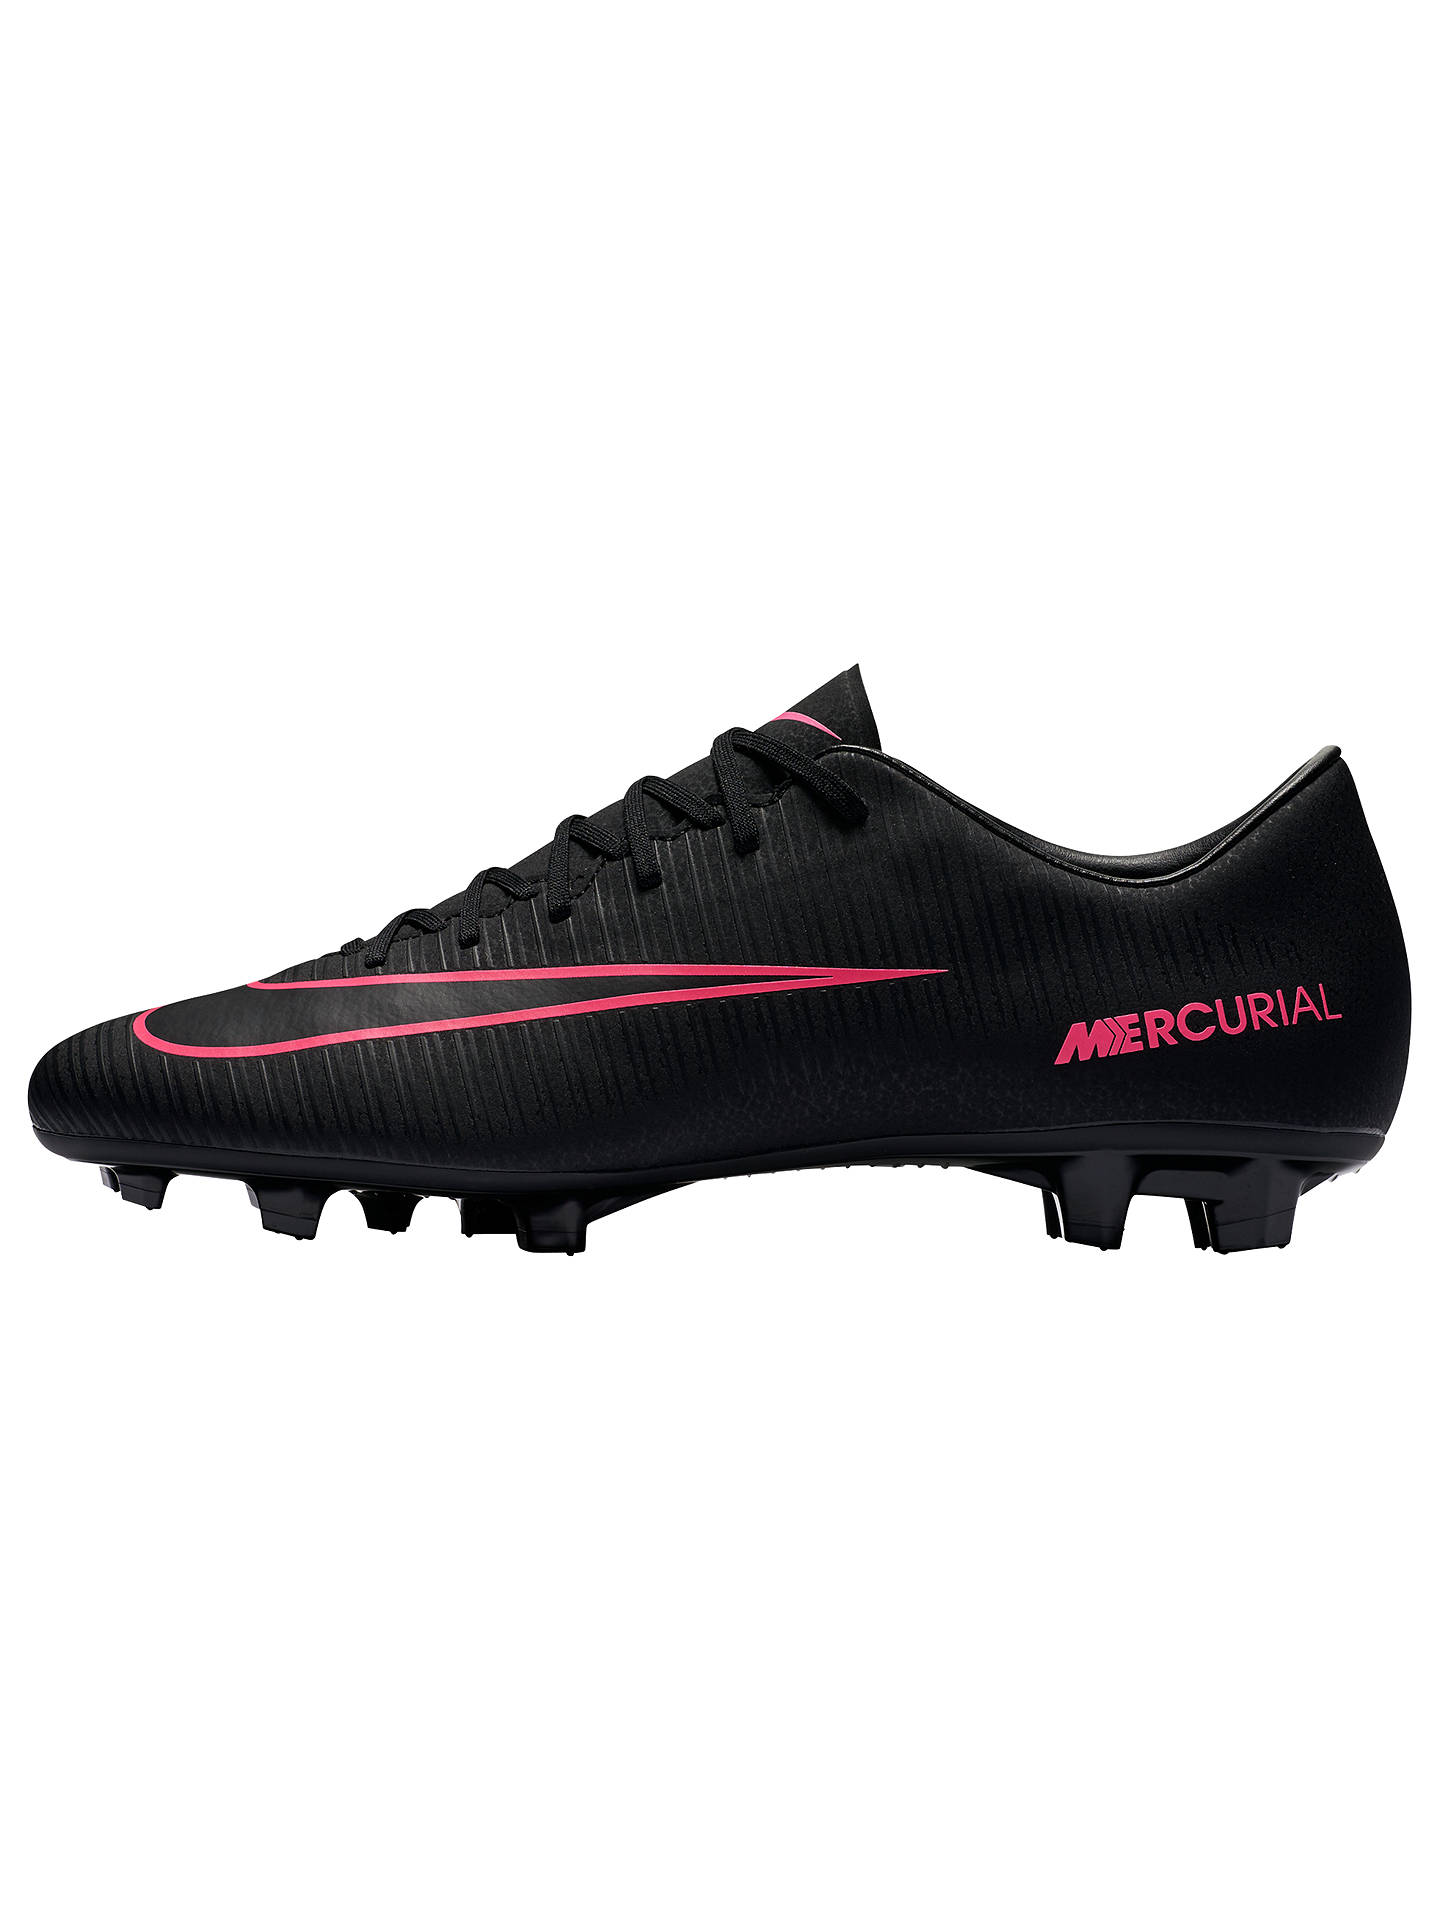 69ab139b4 Buy Nike Mercurial Victory VI FG Men s Football Boots